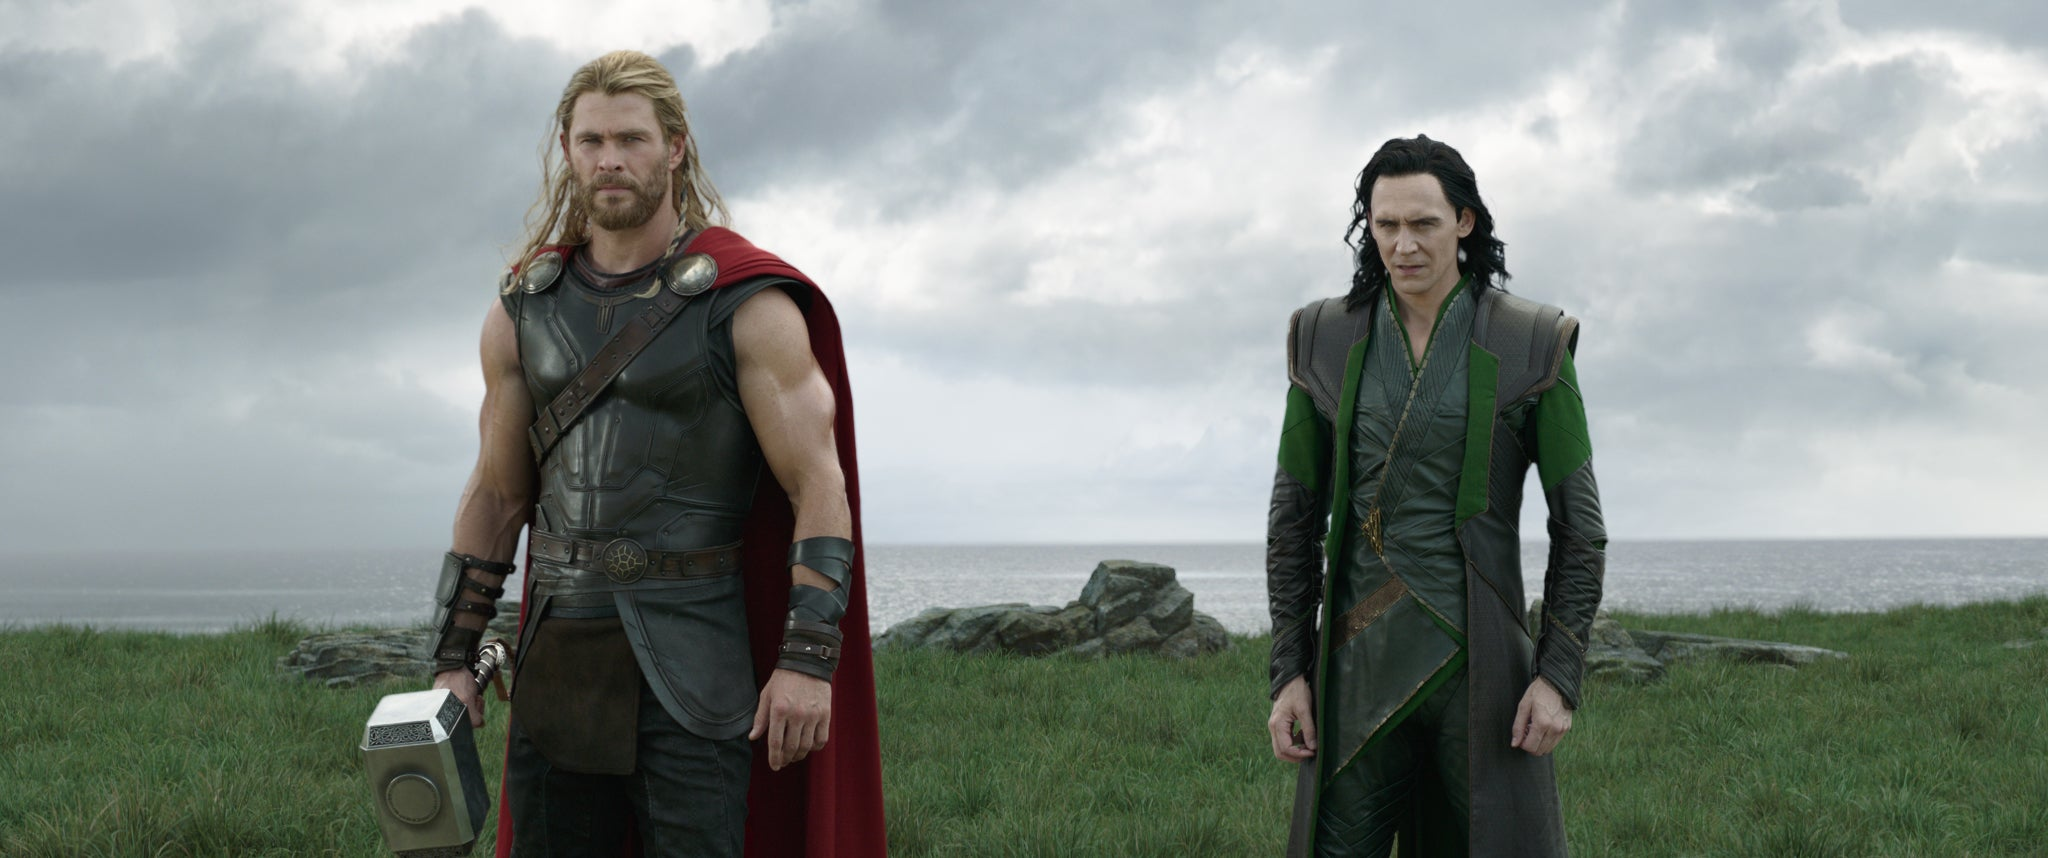 How Chris Hemsworth Convinced Spoiler To Make That